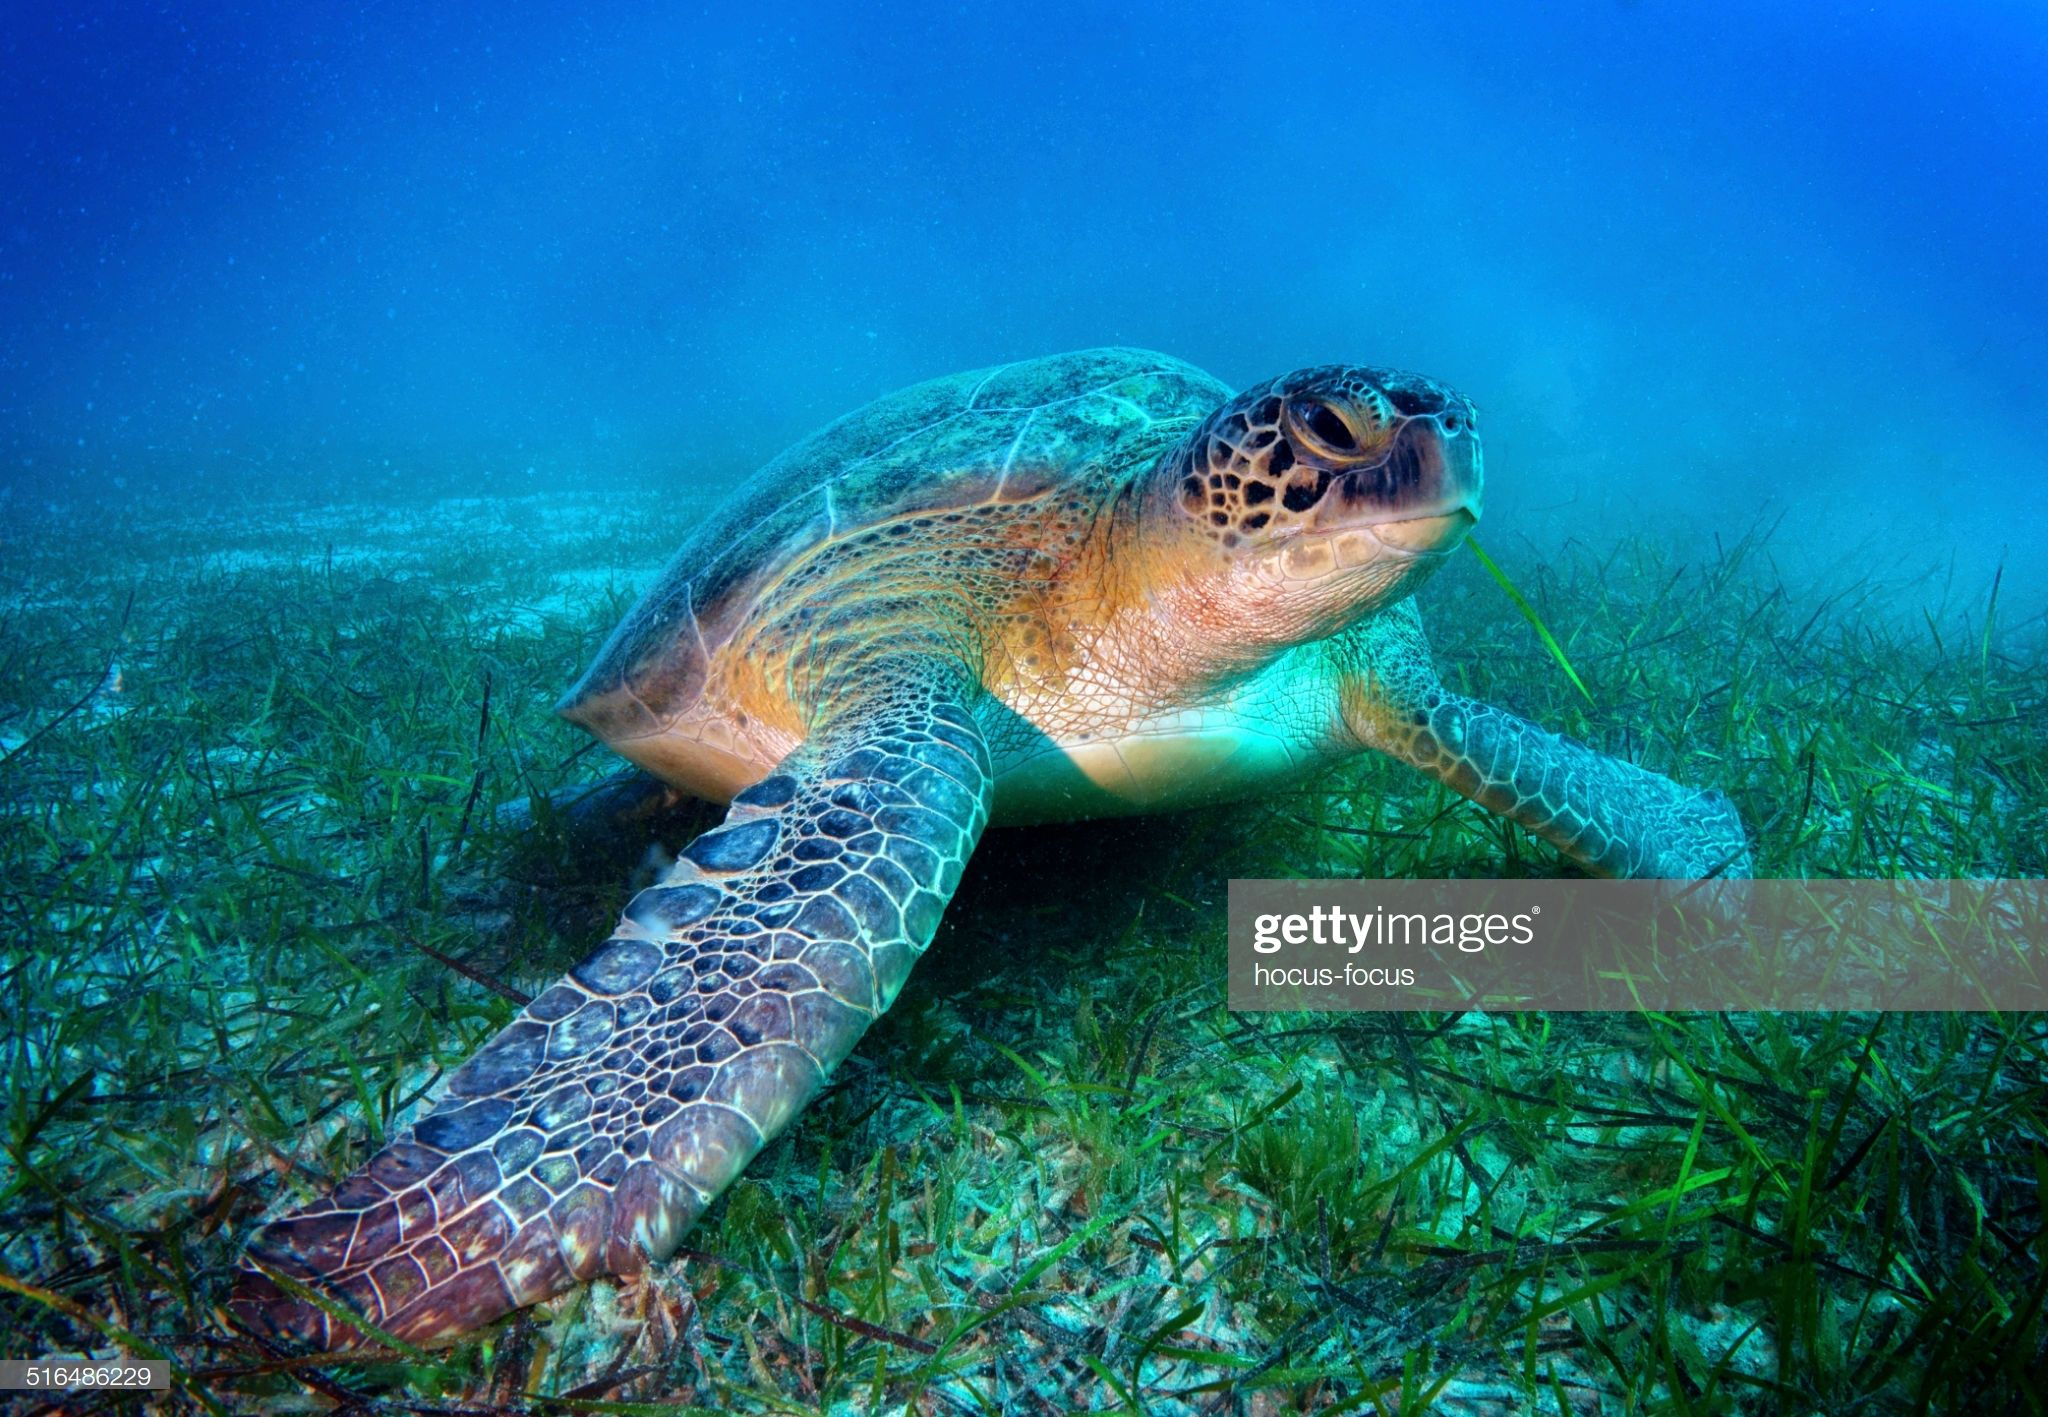 Sea Turtle Underwater Shot In